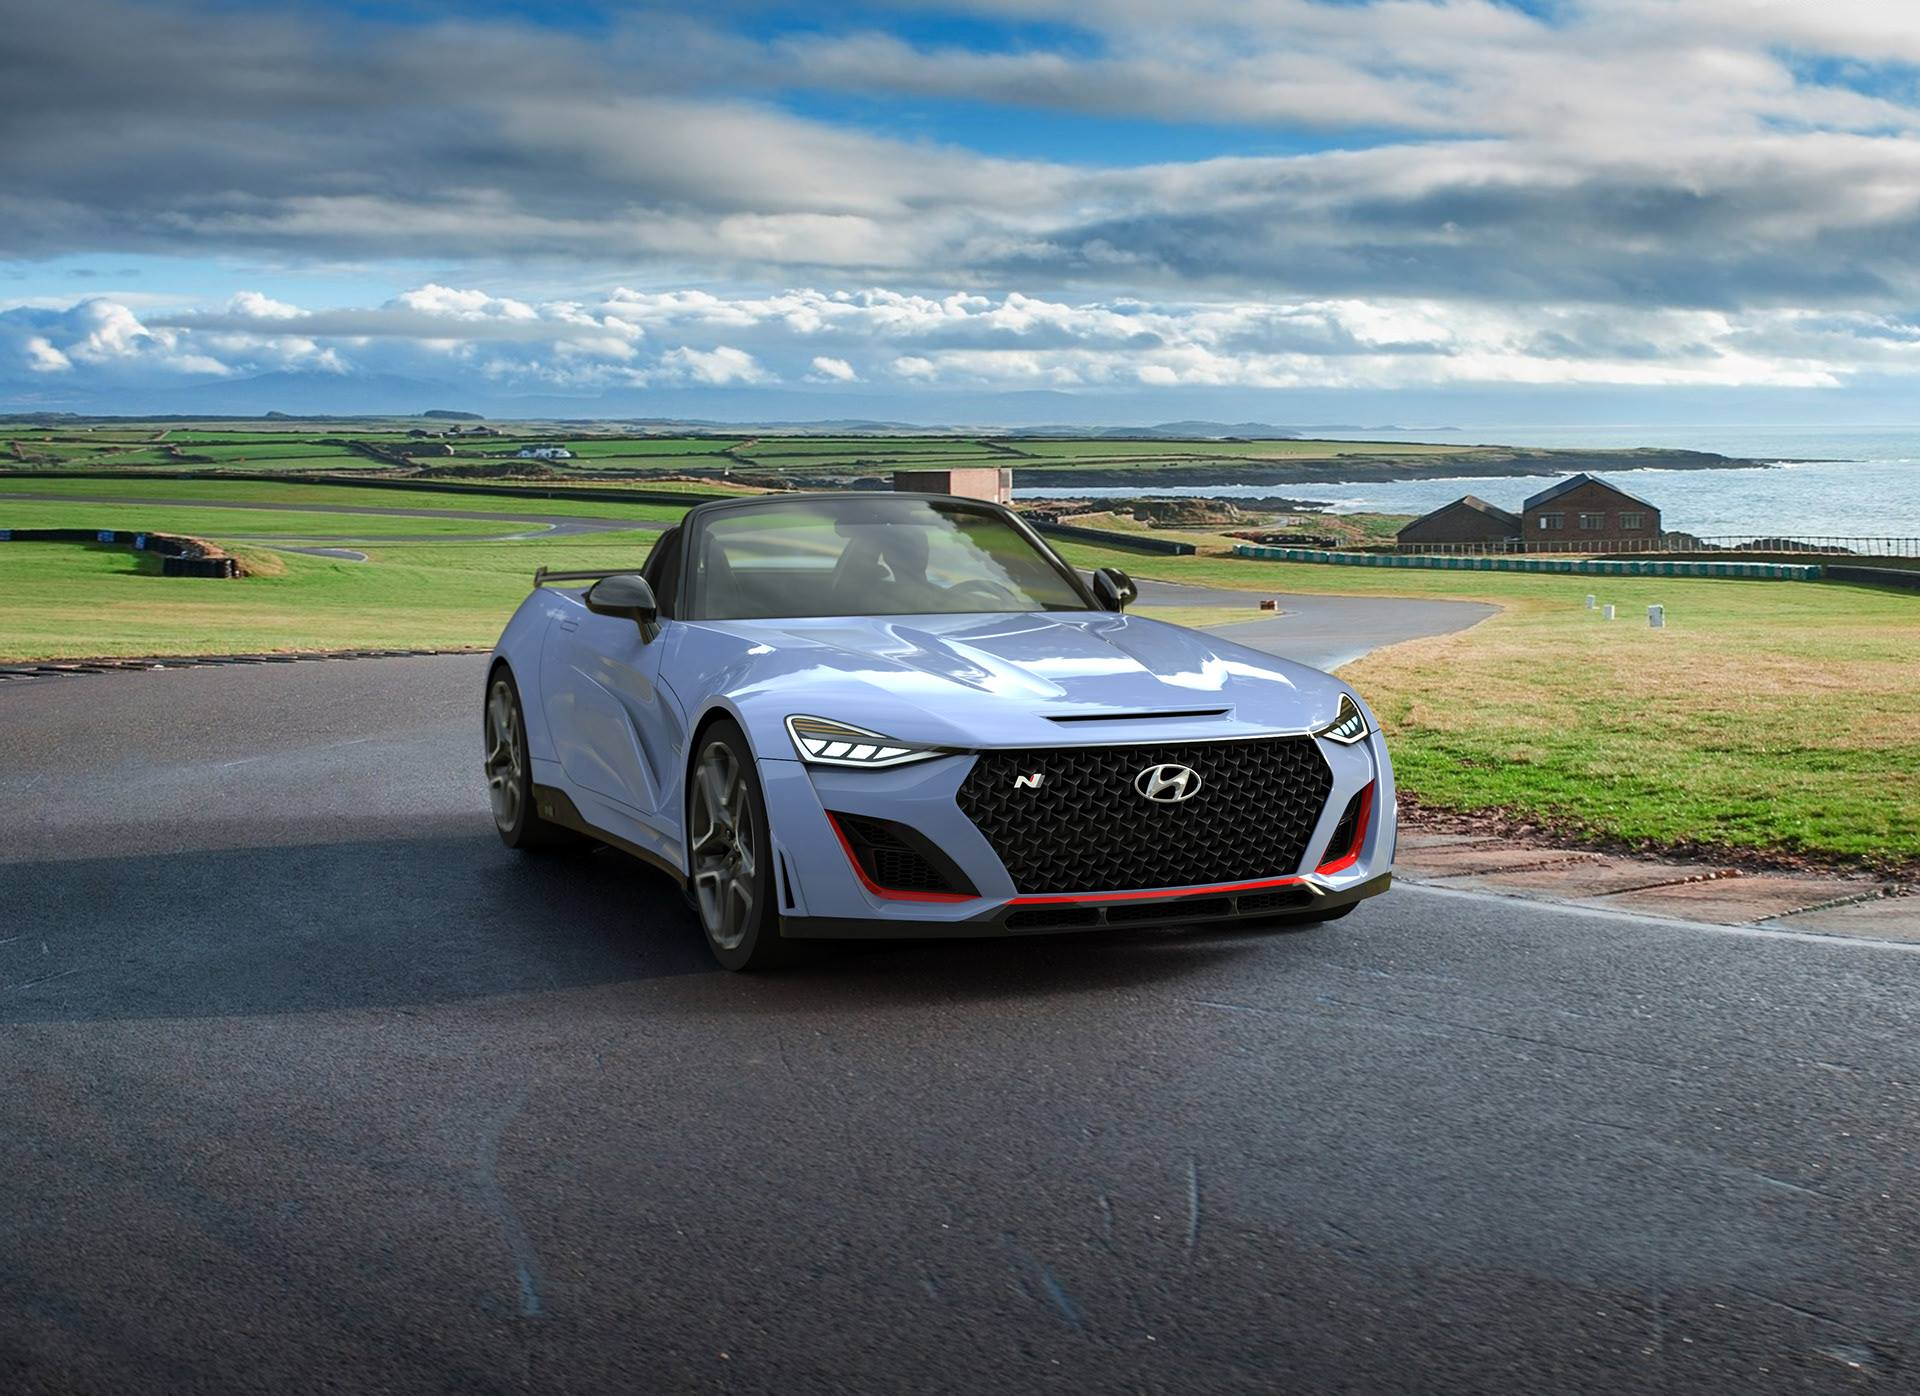 Hyundai N Performance Convertible #aprilfoolsday